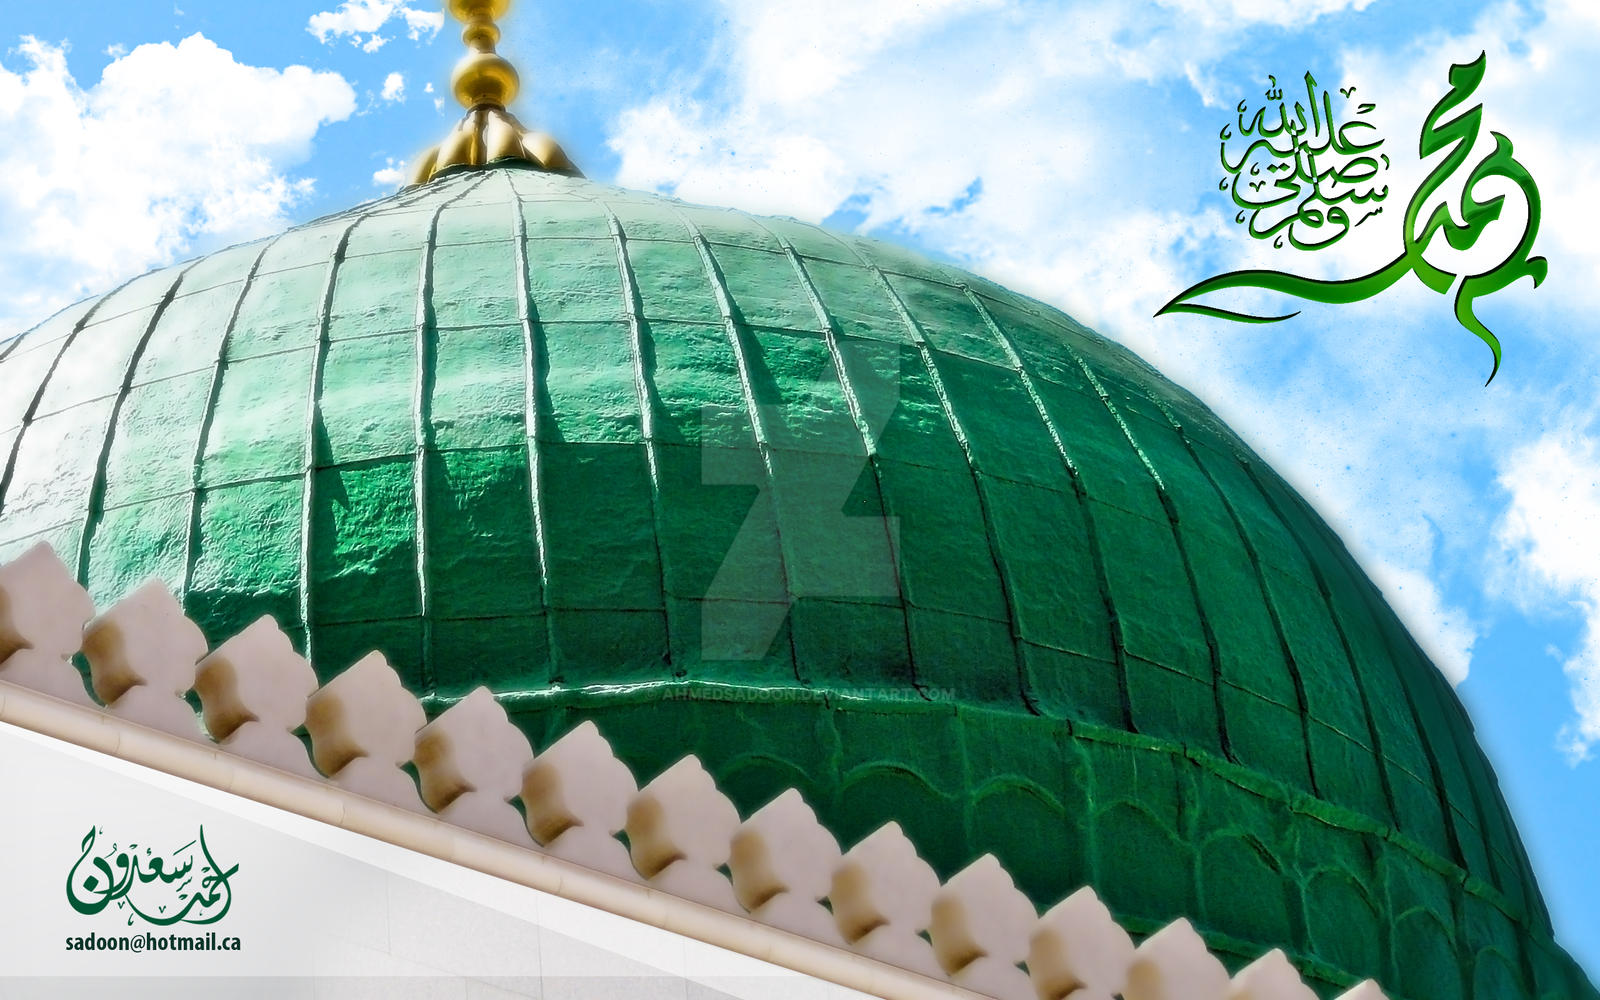 The Green Dome Of Peace By AhmedSadoon On DeviantArt